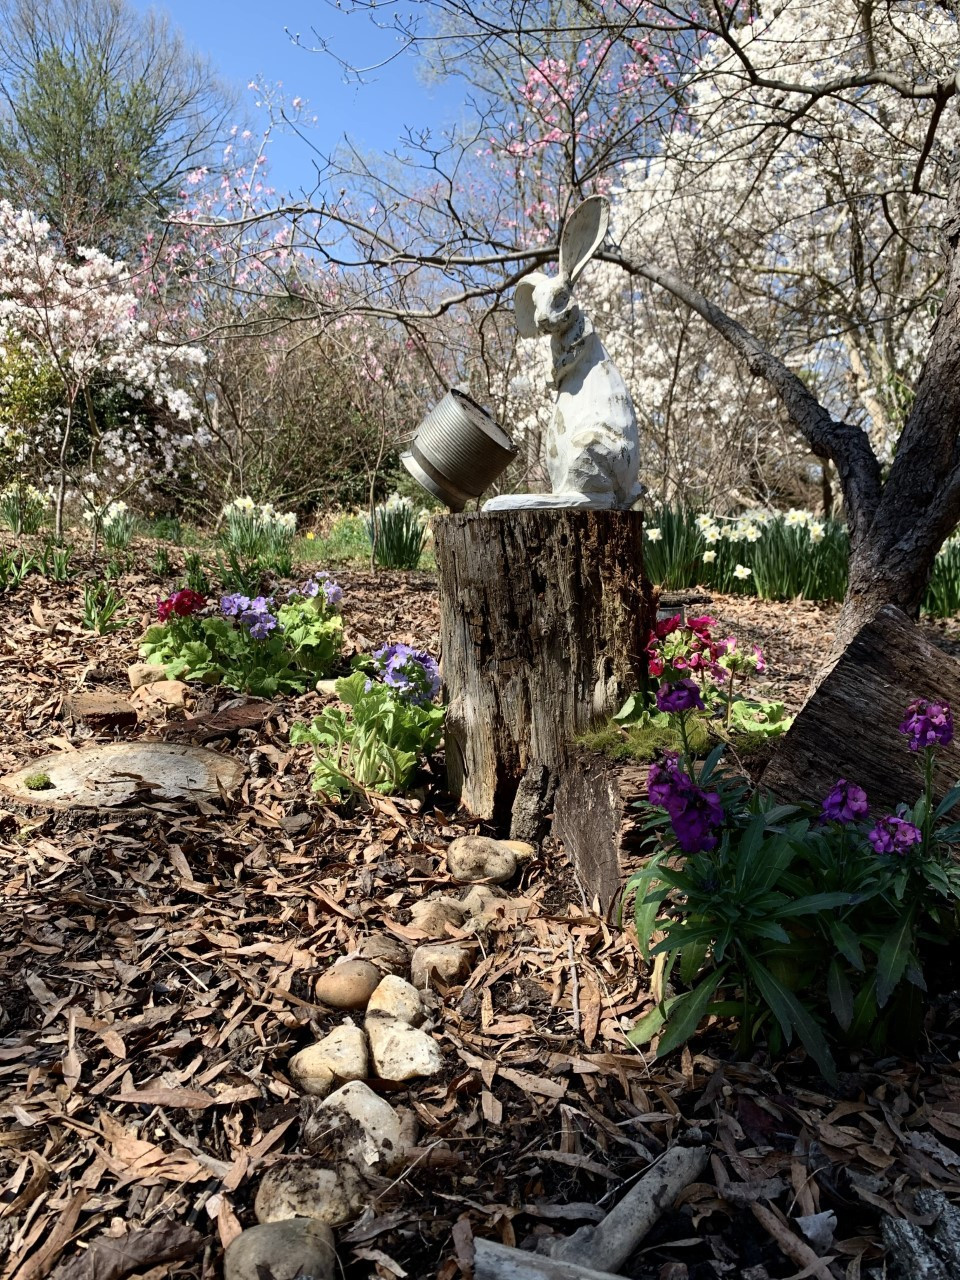 A statue of a bunny on a stump under a Magnolia and Cherry blossom trees in the spring walk.